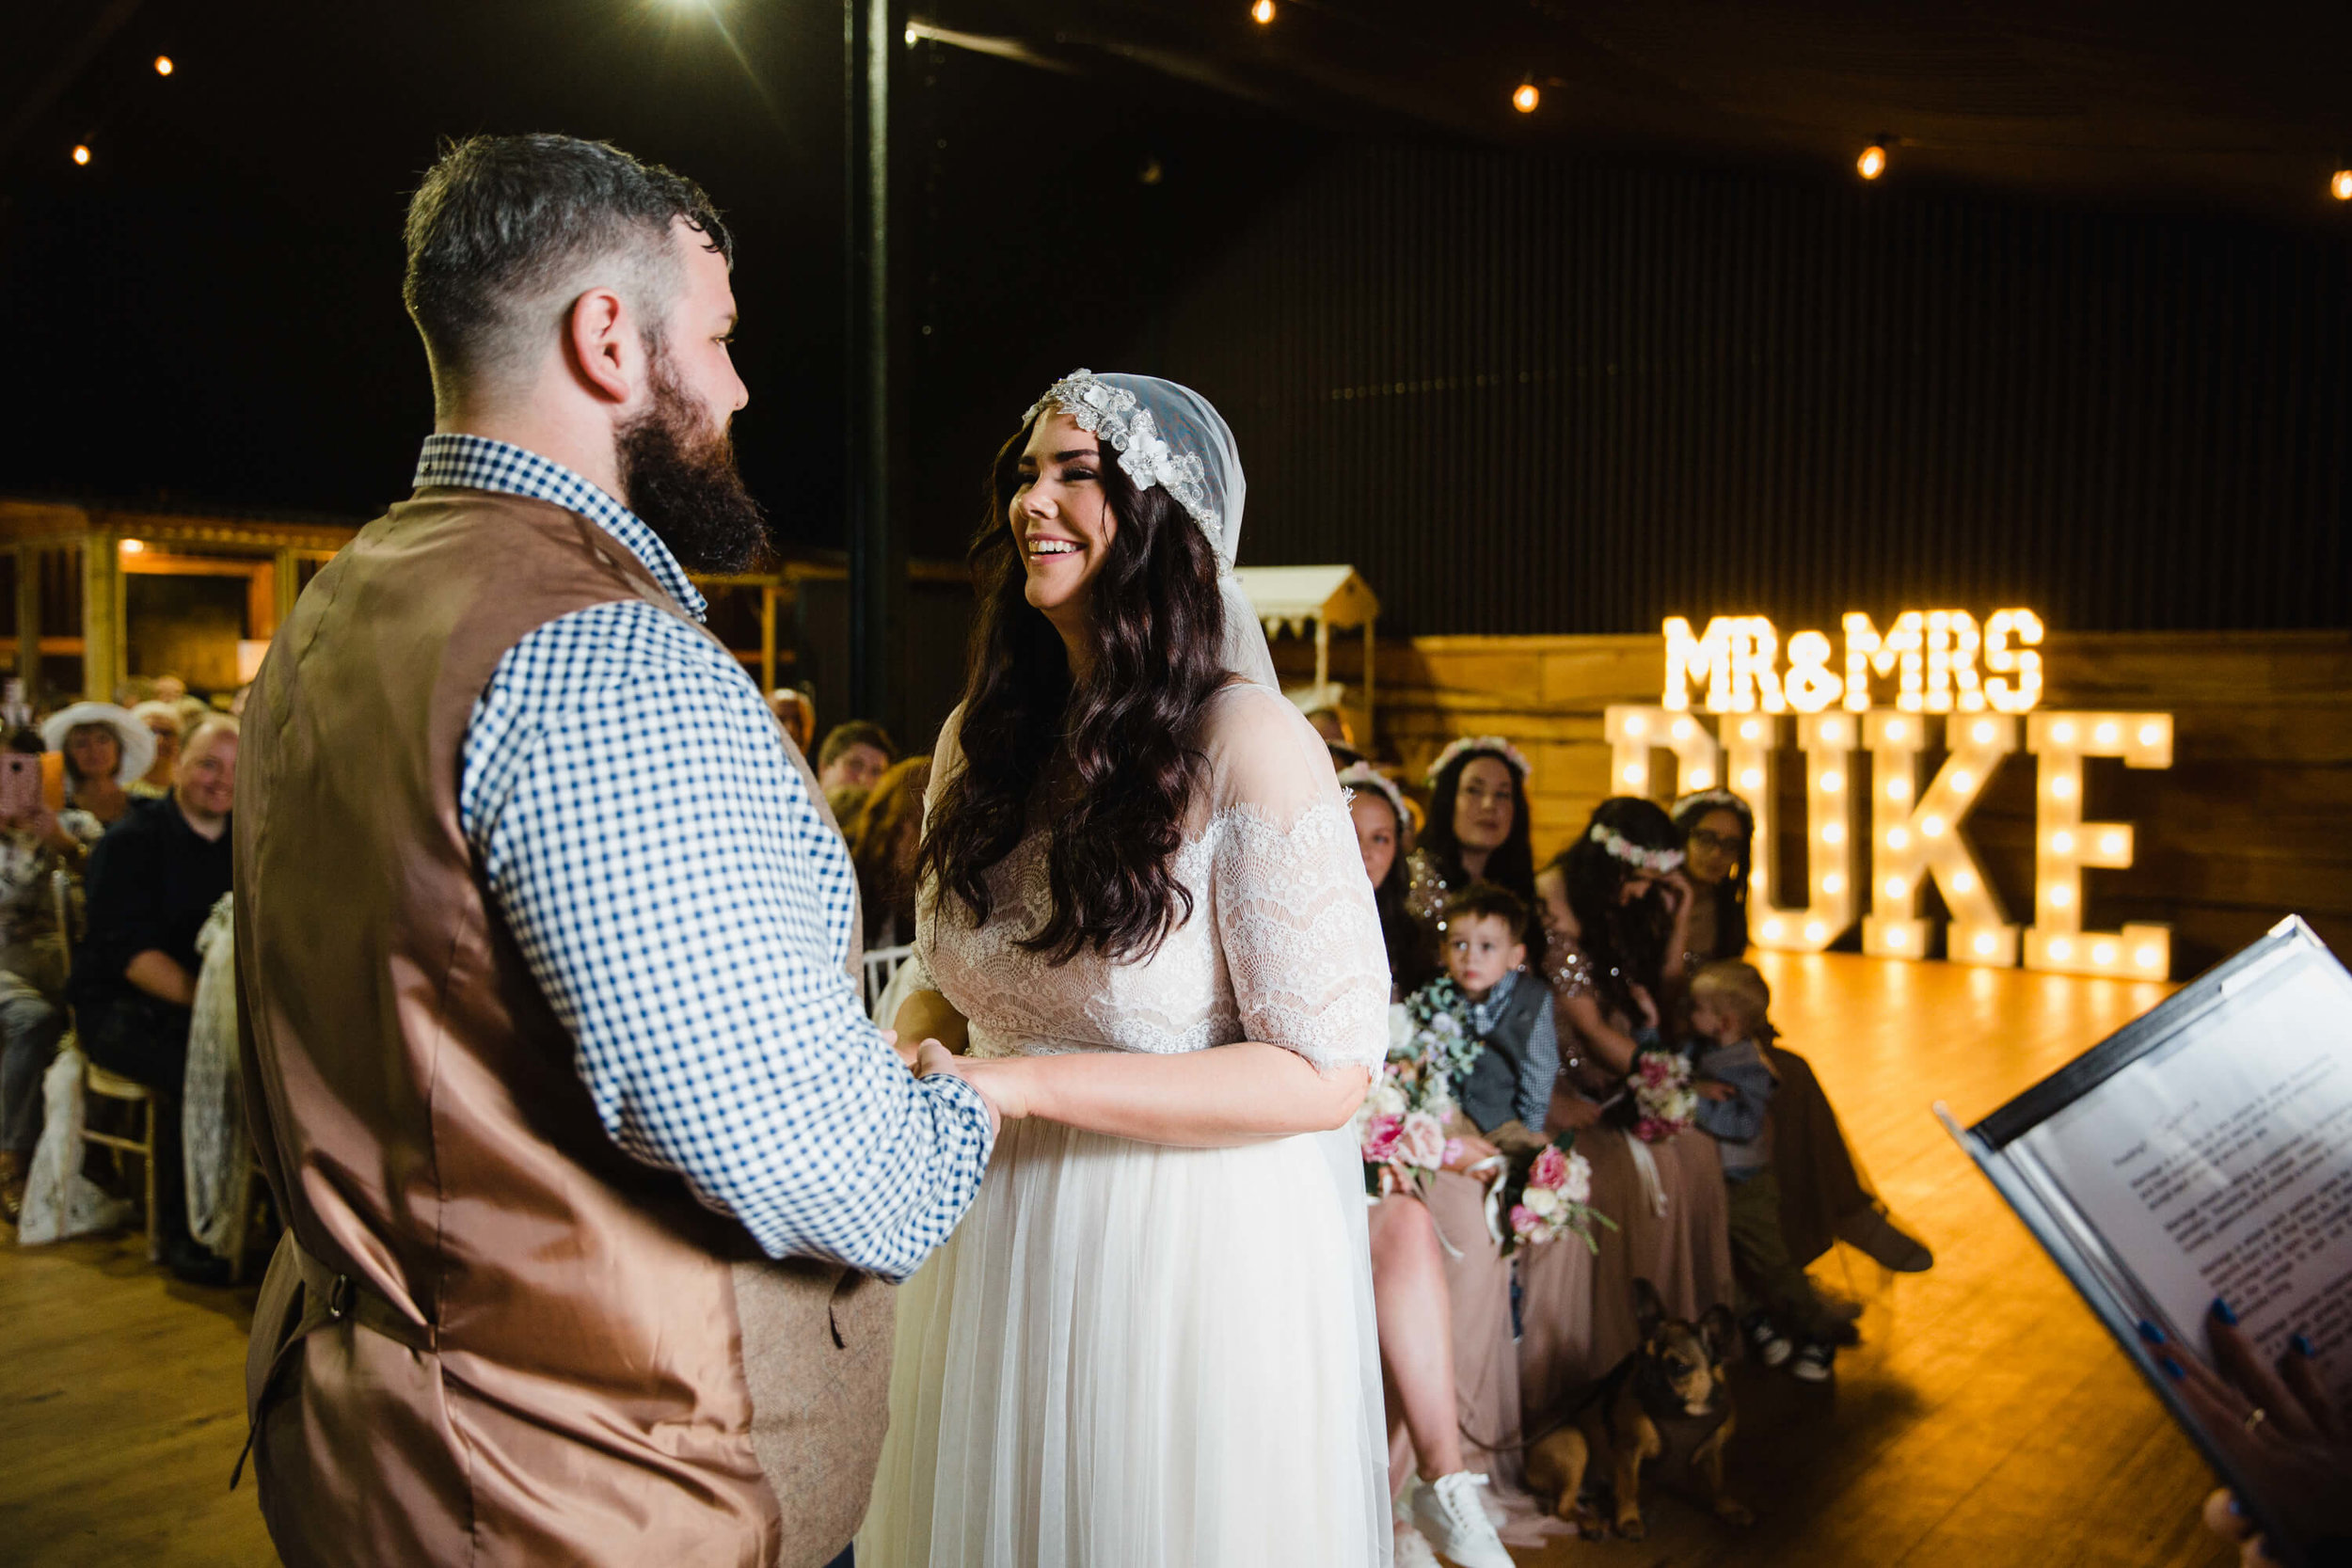 Newly wedded couple at top of aisle for nuptials with store light up letters in backdrop